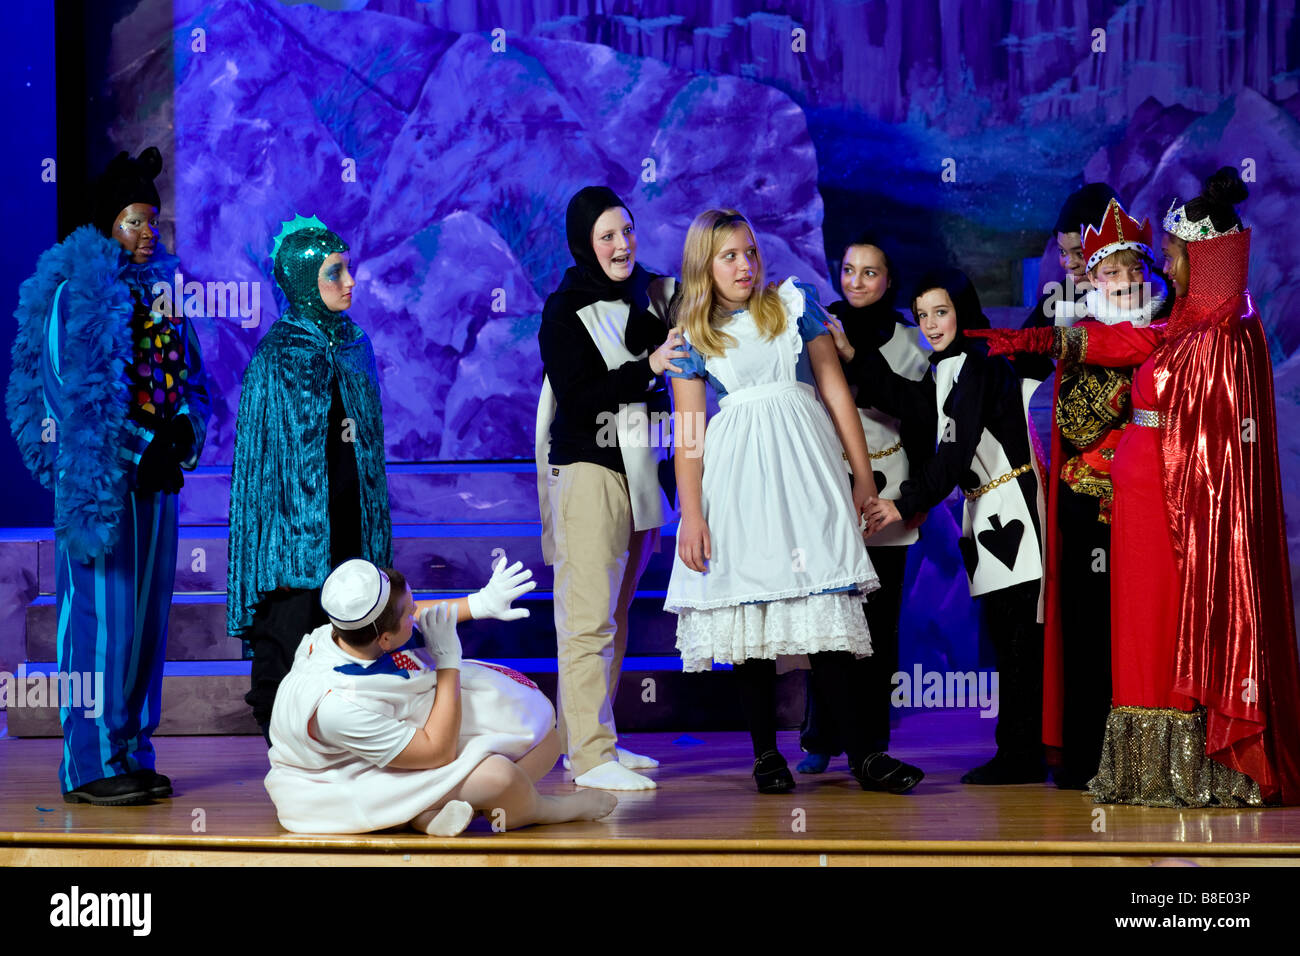 Middle school students on stage in a theatrical production. - Stock Image